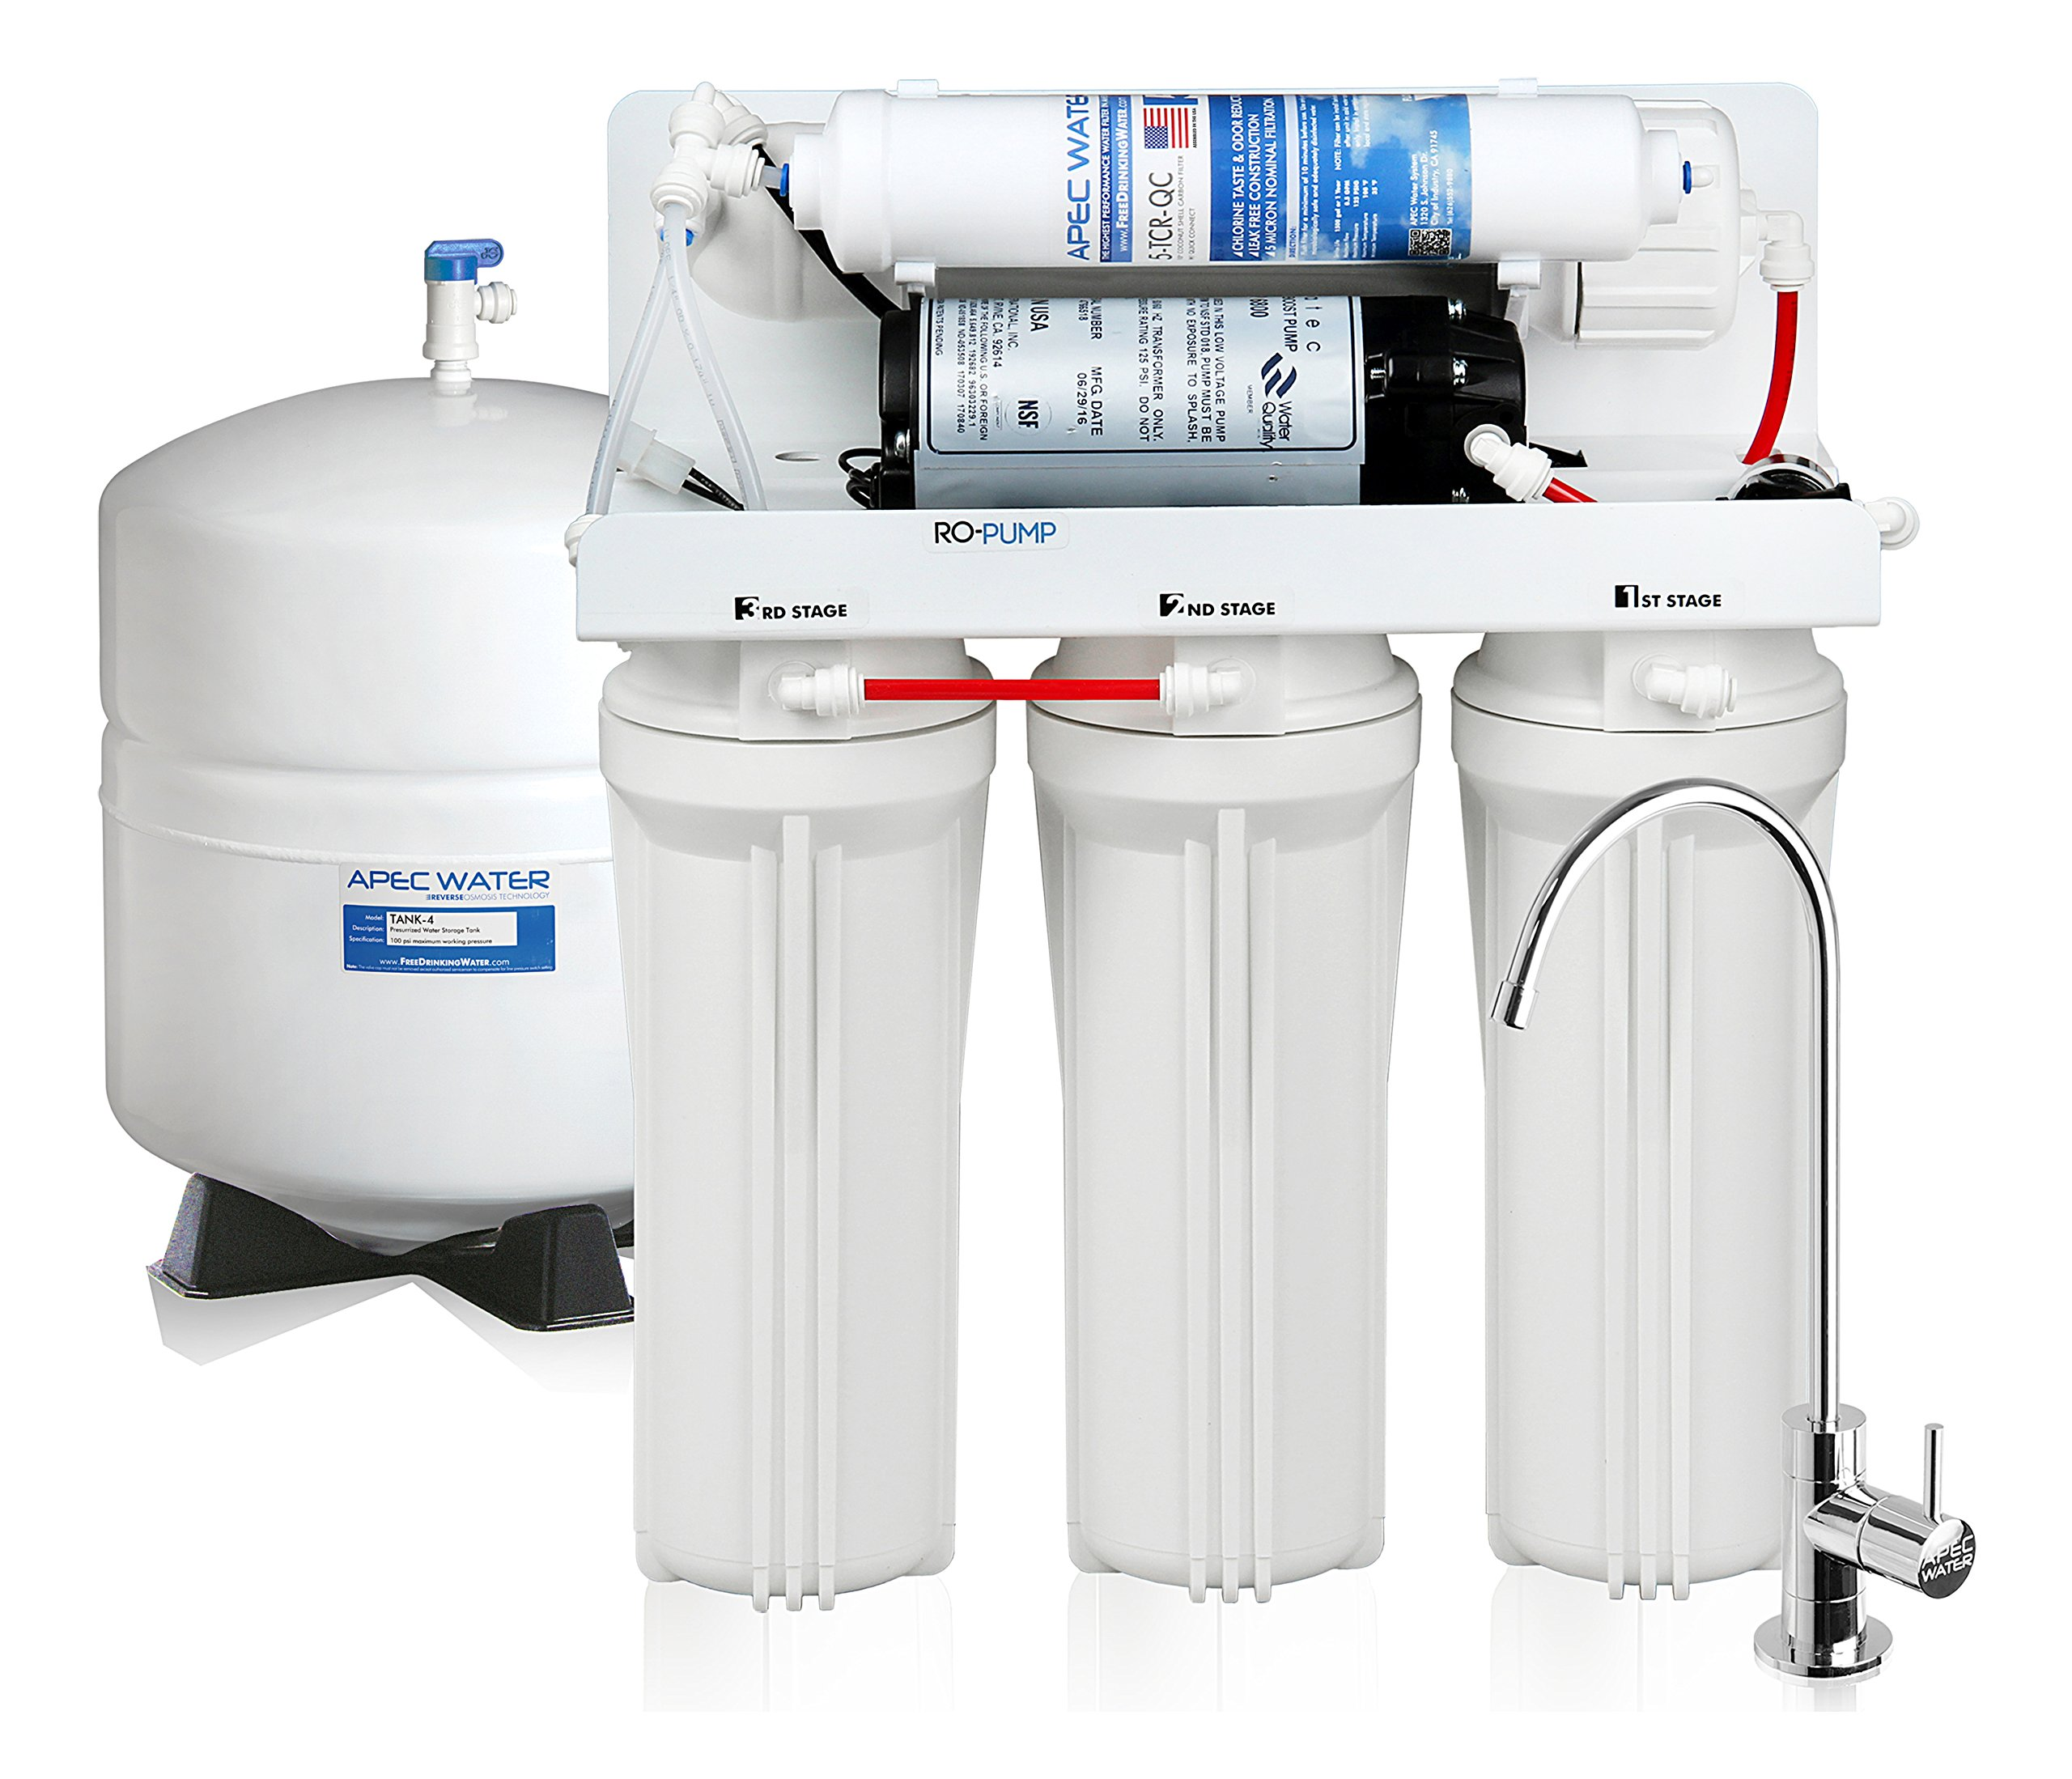 APEC Top Tier Ultra Safe Electric Pumped Reverse Osmosis Drinking Water Filter System for Low Pressure Homes, 0-30psi (RO-PUMP-120V, USA)